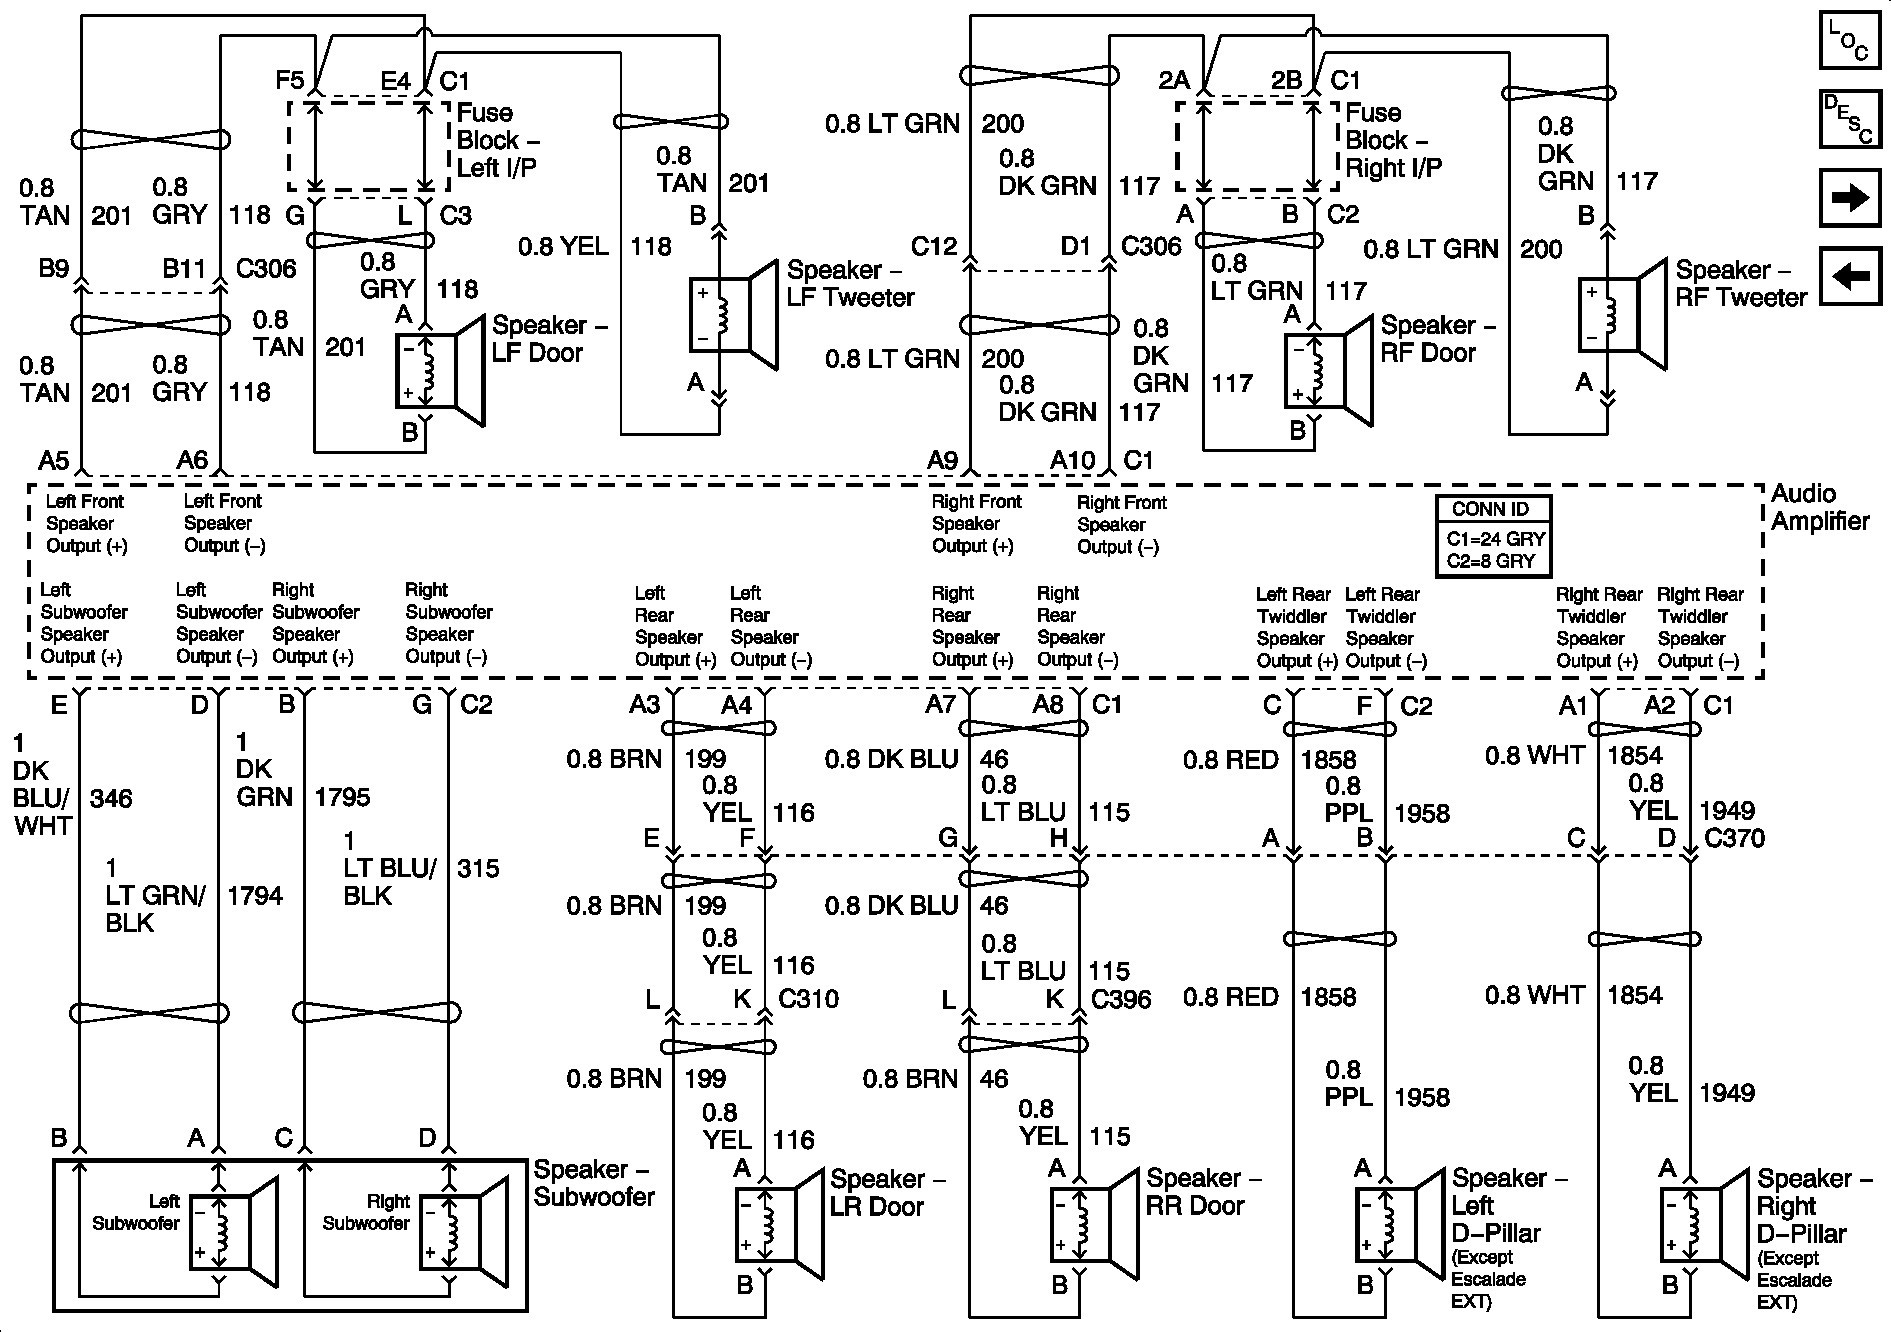 2007 Tahoe Radio Wiring Diagram Elegant Wiring Diagram Image 2004 Chevy  Tahoe Seats 2004 Chevy Tahoe Headlights Wiring Diagram